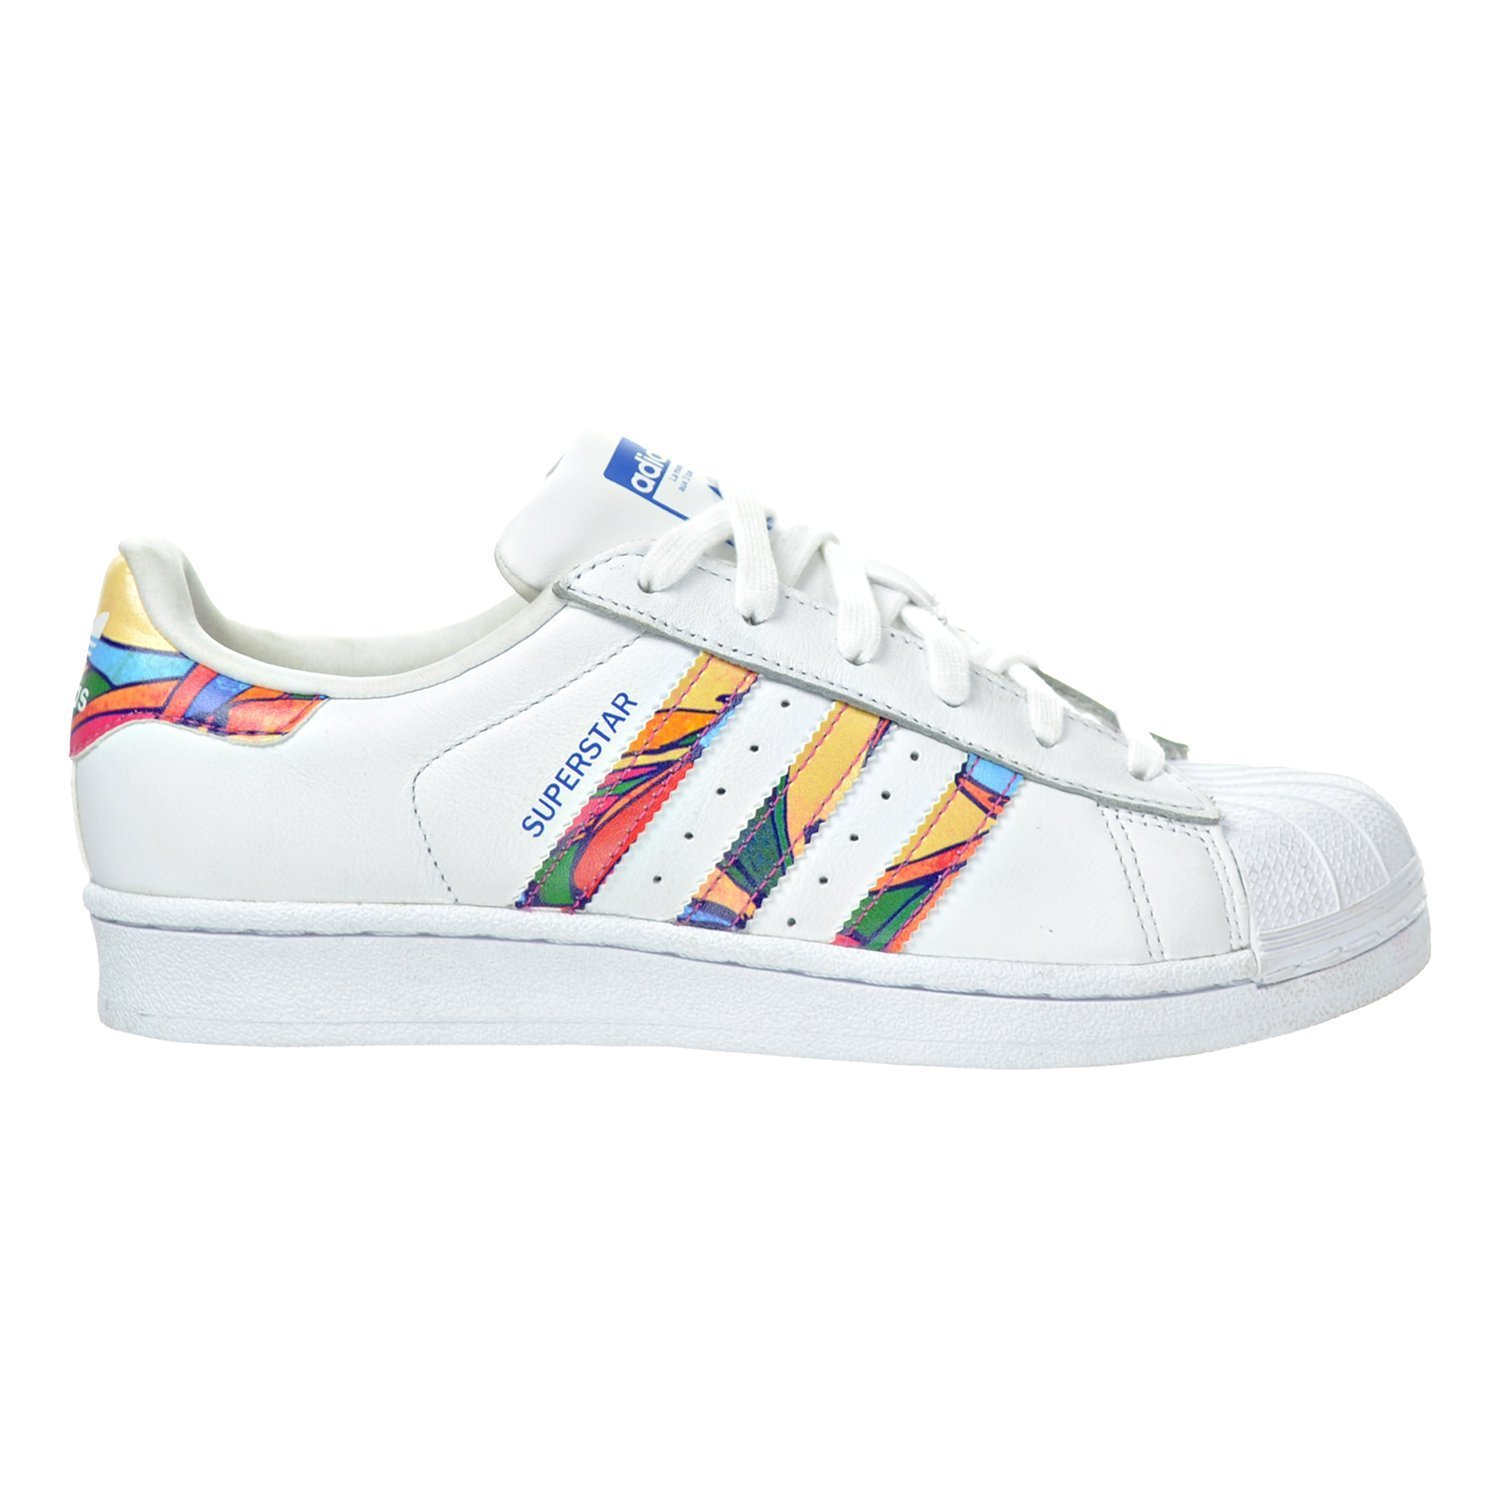 Adidas Superstar Multicolor herbusinessuk.